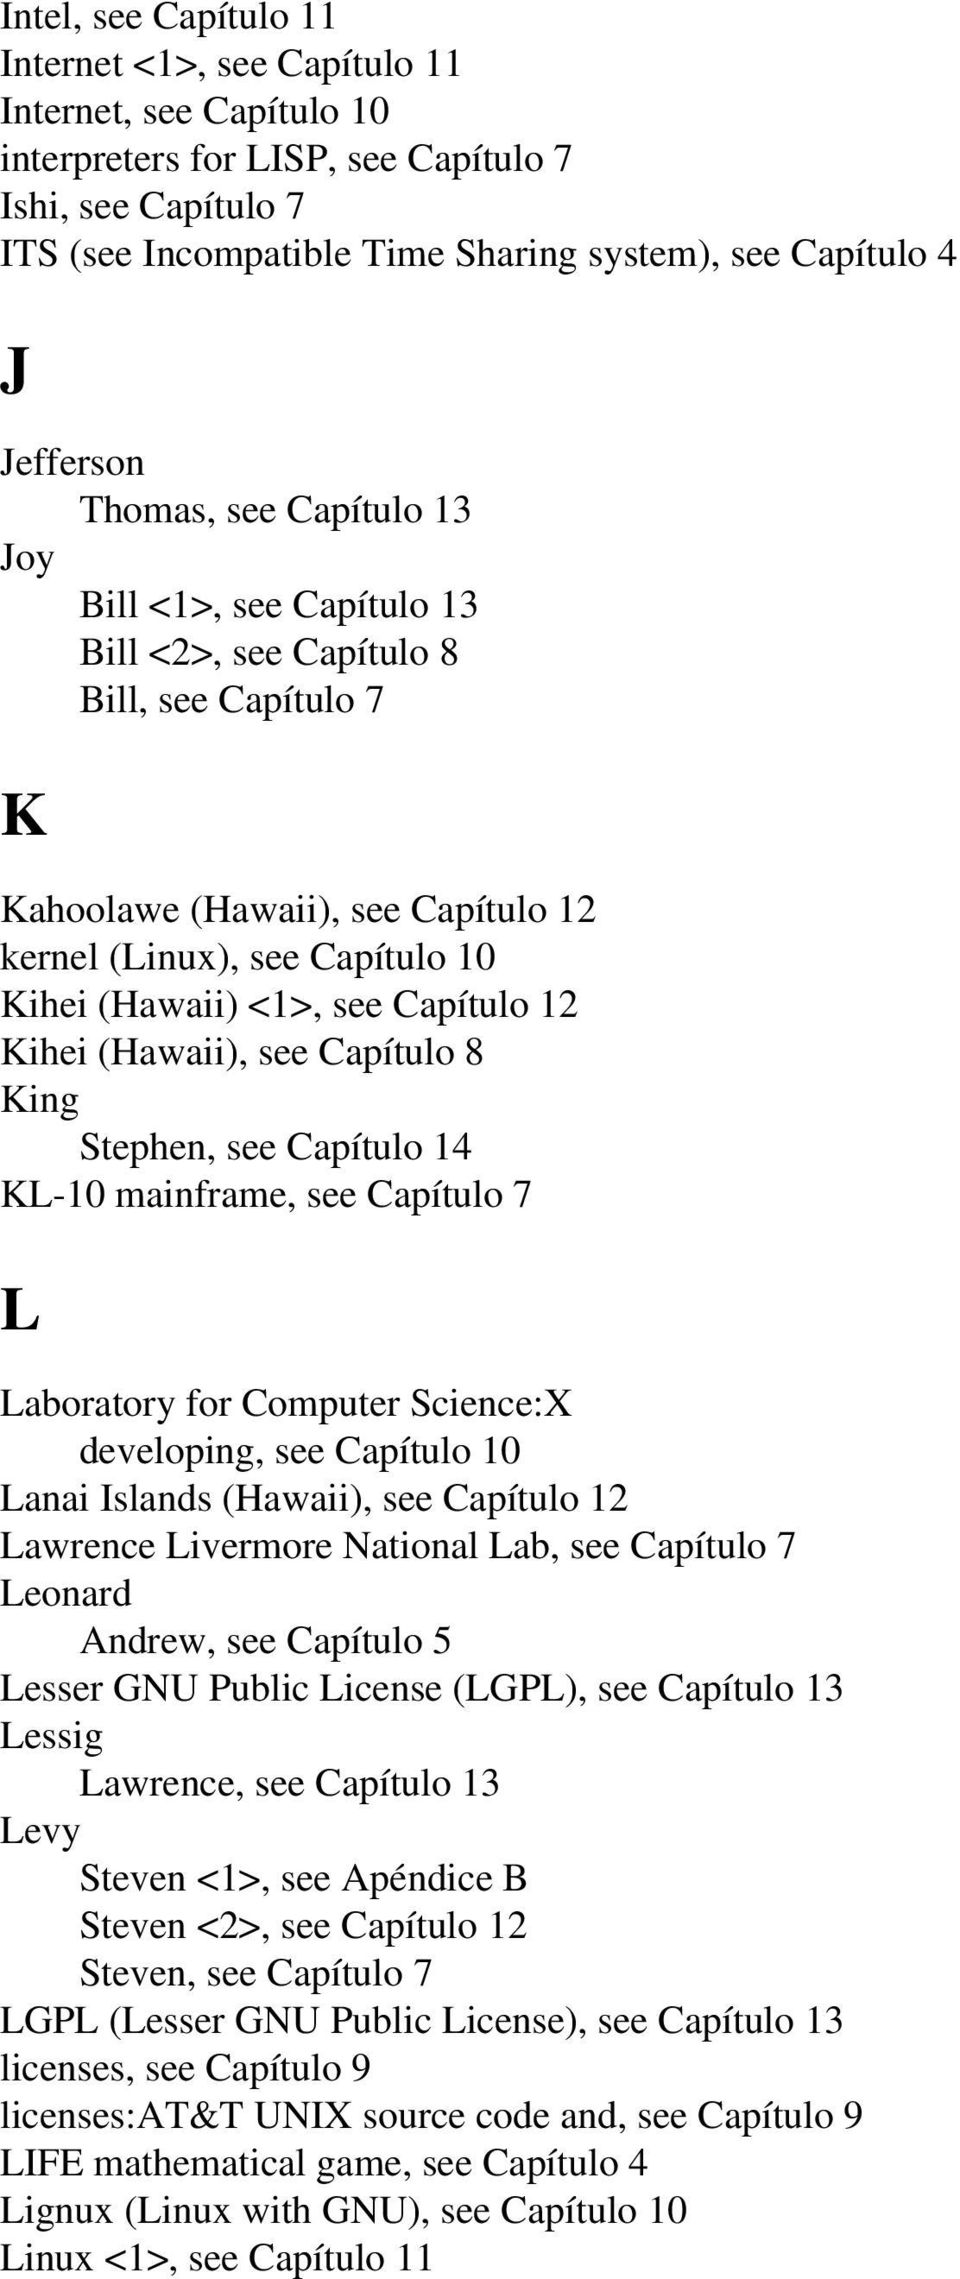 see Capítulo 12 Kihei (Hawaii), see Capítulo 8 King Stephen, see Capítulo 14 KL-10 mainframe, see Capítulo 7 L Laboratory for Computer Science:X developing, see Capítulo 10 Lanai Islands (Hawaii),